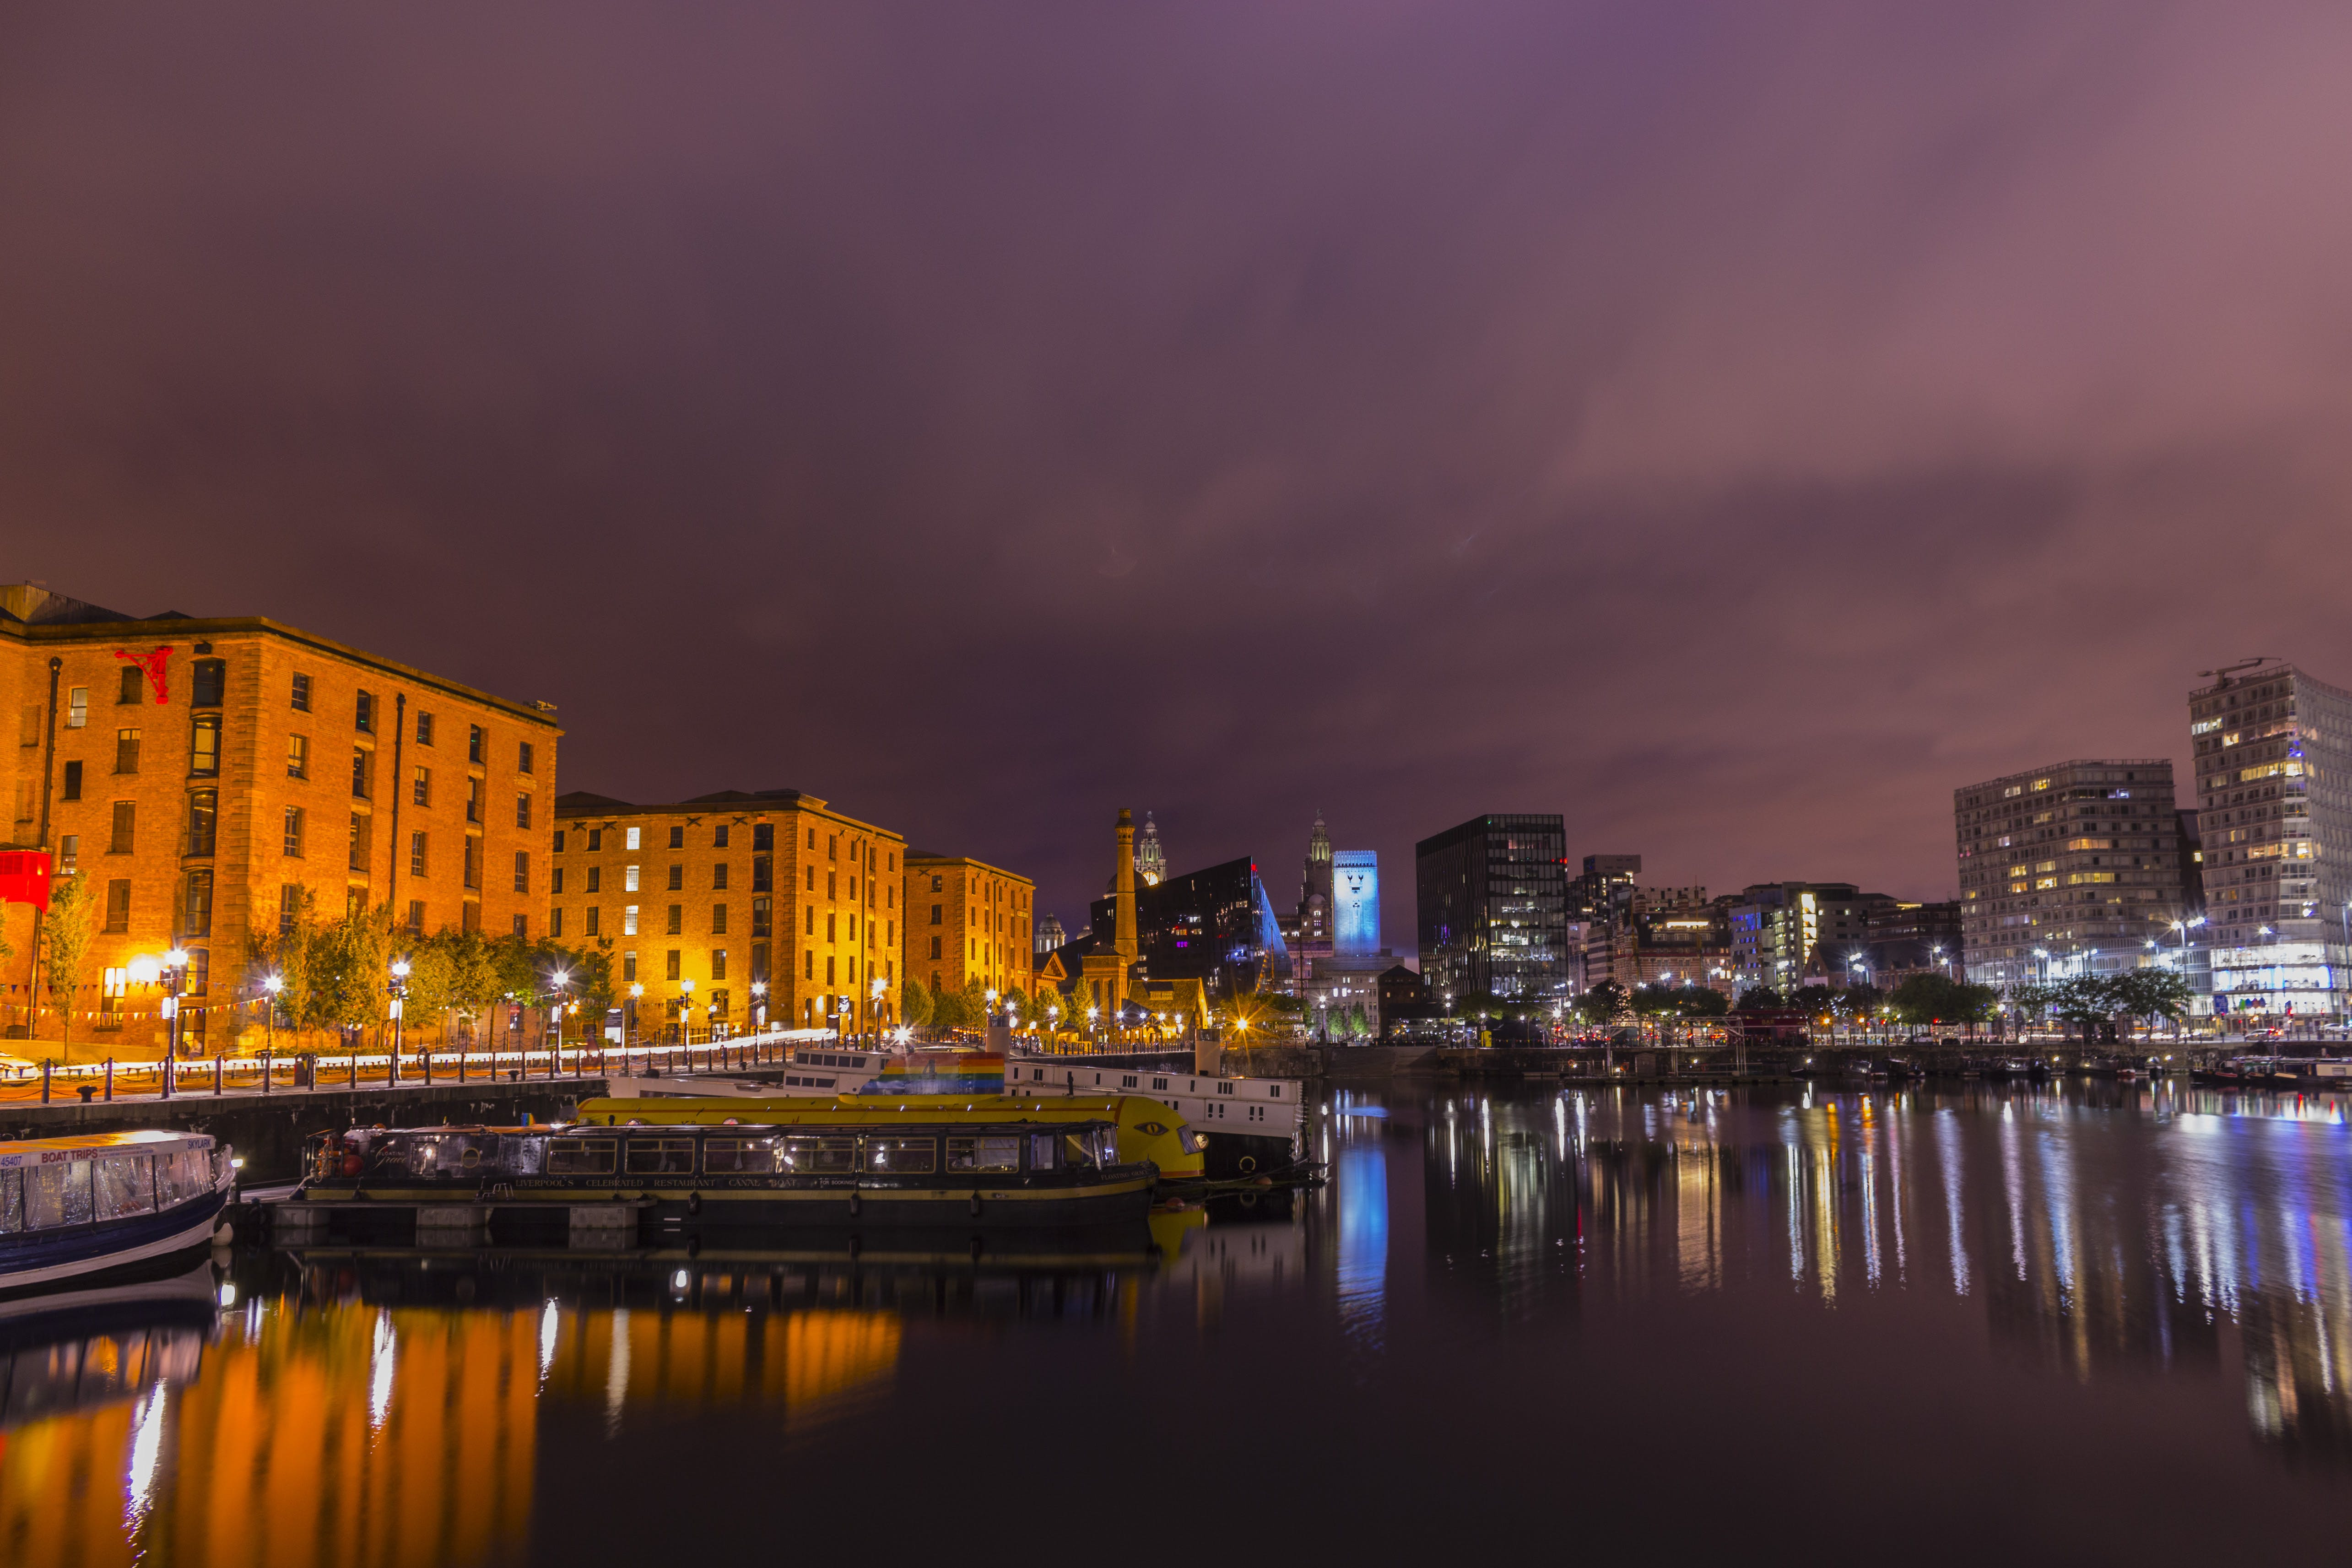 Albert Dock, architecture, bridge